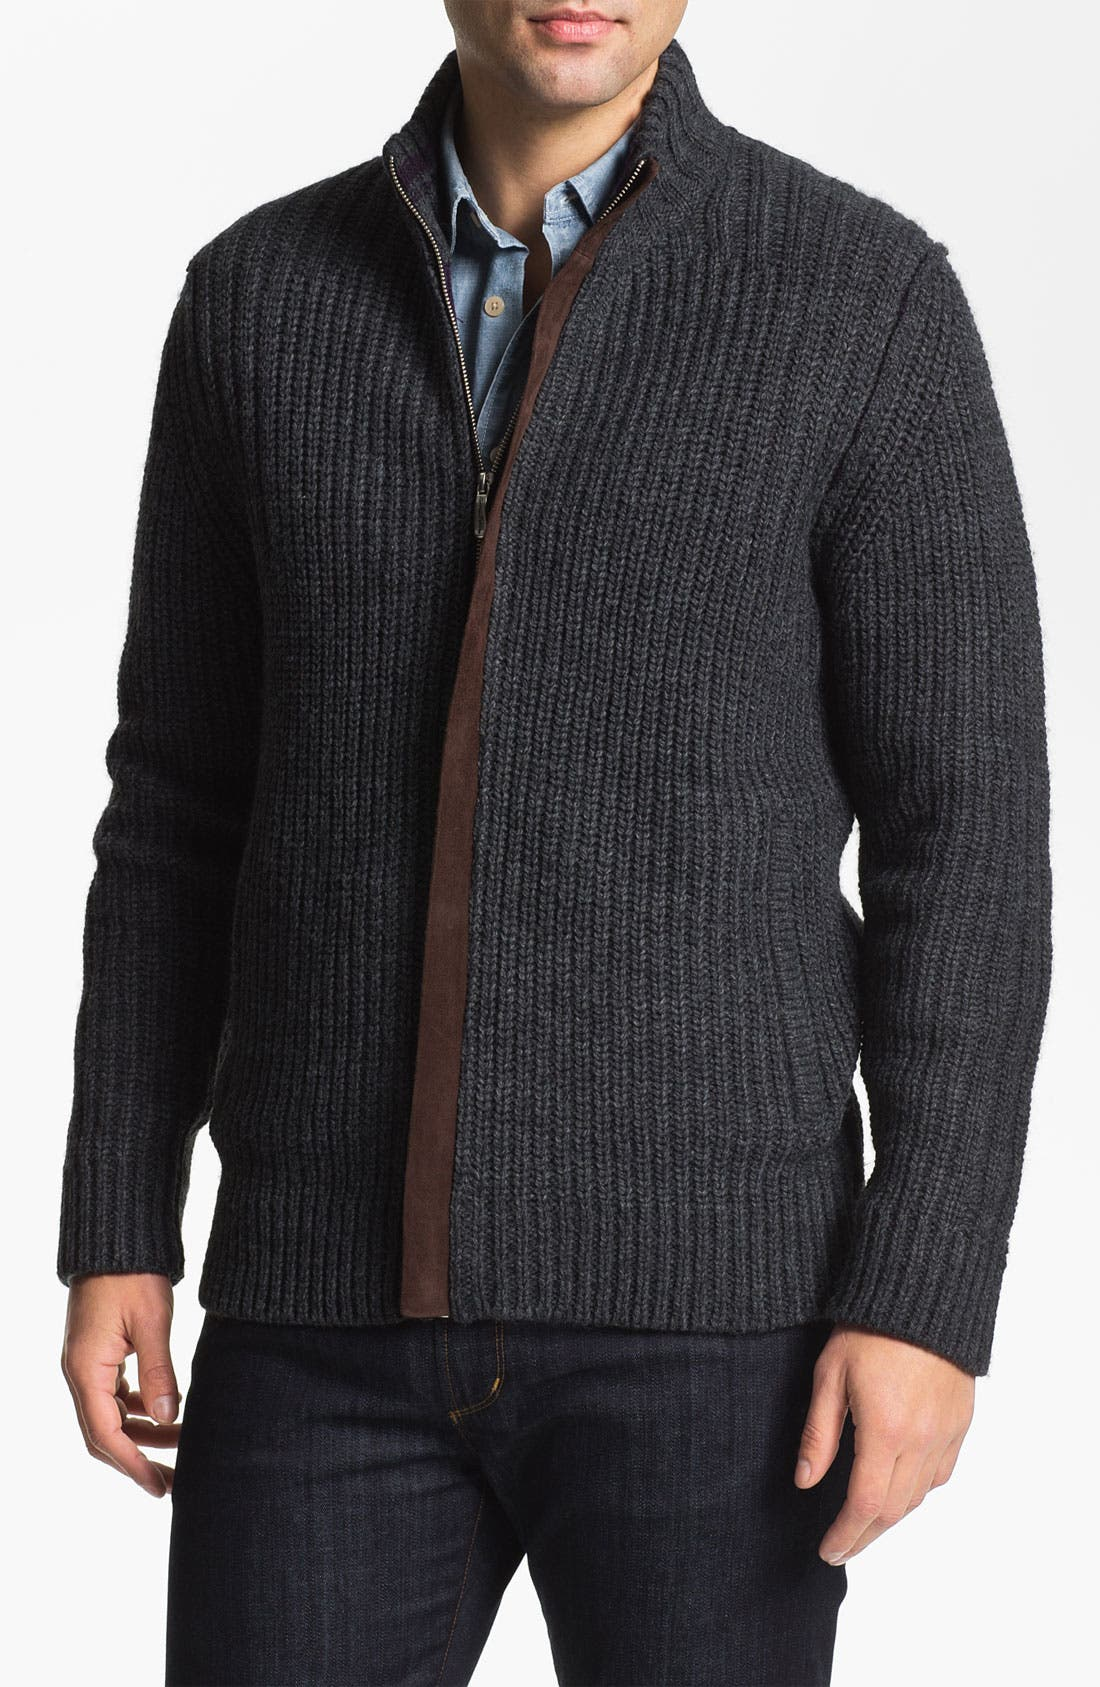 Main Image - Tommy Bahama 'The Persueder' Zip Cardigan